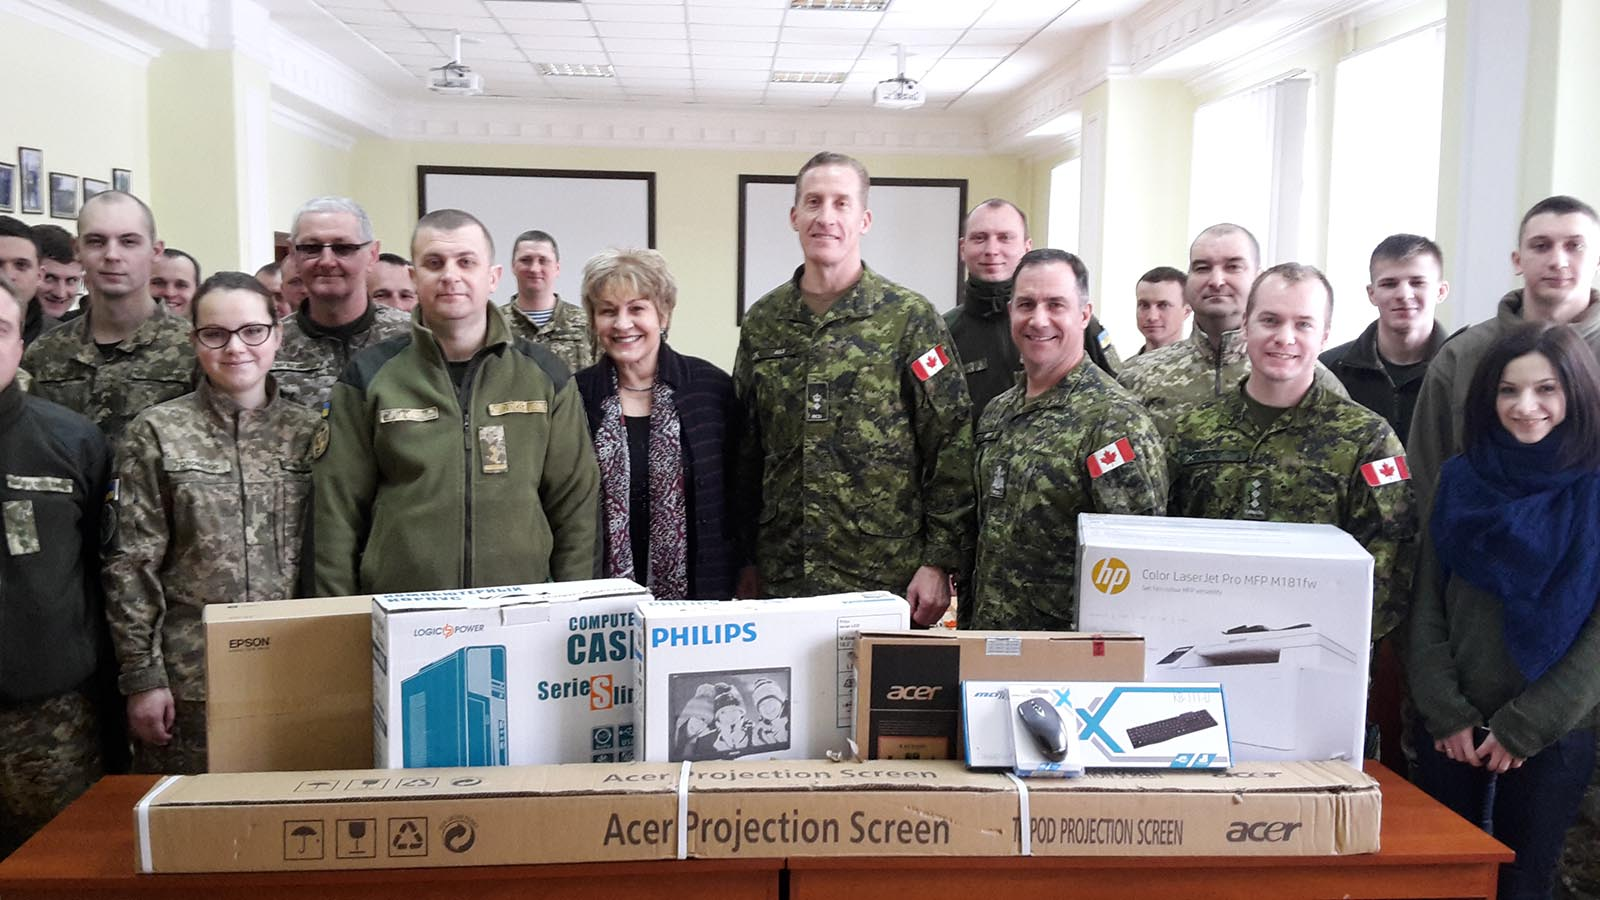 Lieutenant-Colonel Fraser Auld, Commander Joint Task Force - Ukraine (centre) stands with Roksolana Baran of the Canadian Forces Language School Detachment Saint-Jean, as they present language training equipment to the Ukrainian representatives. Photo: Provided by Roksolana Baran. ©2018 DND/MDN Canada.